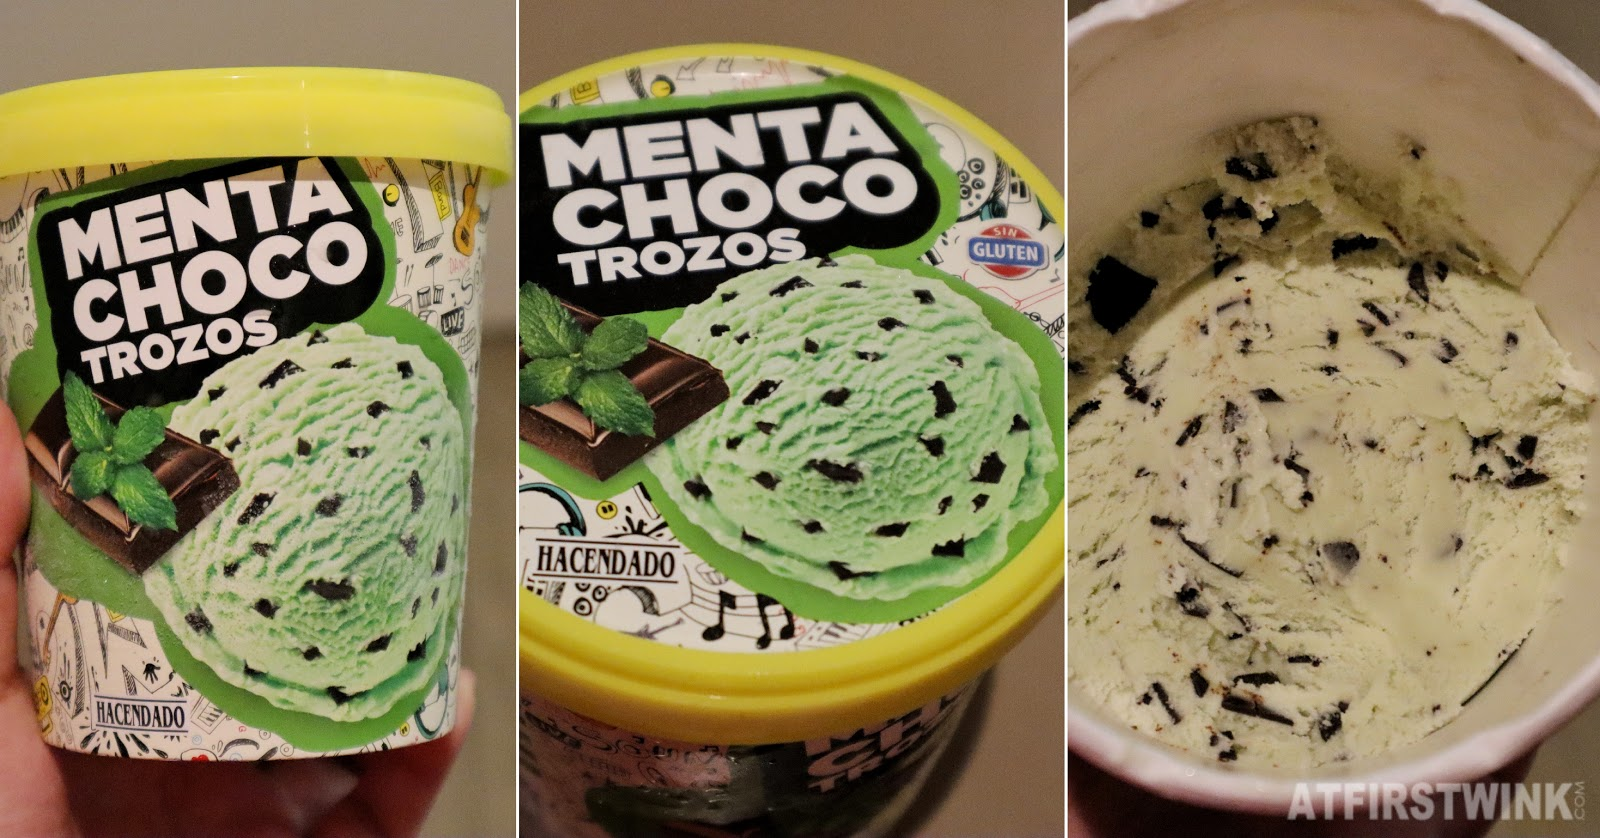 Hacendado mint chocolate mercadona supermarket ice cream